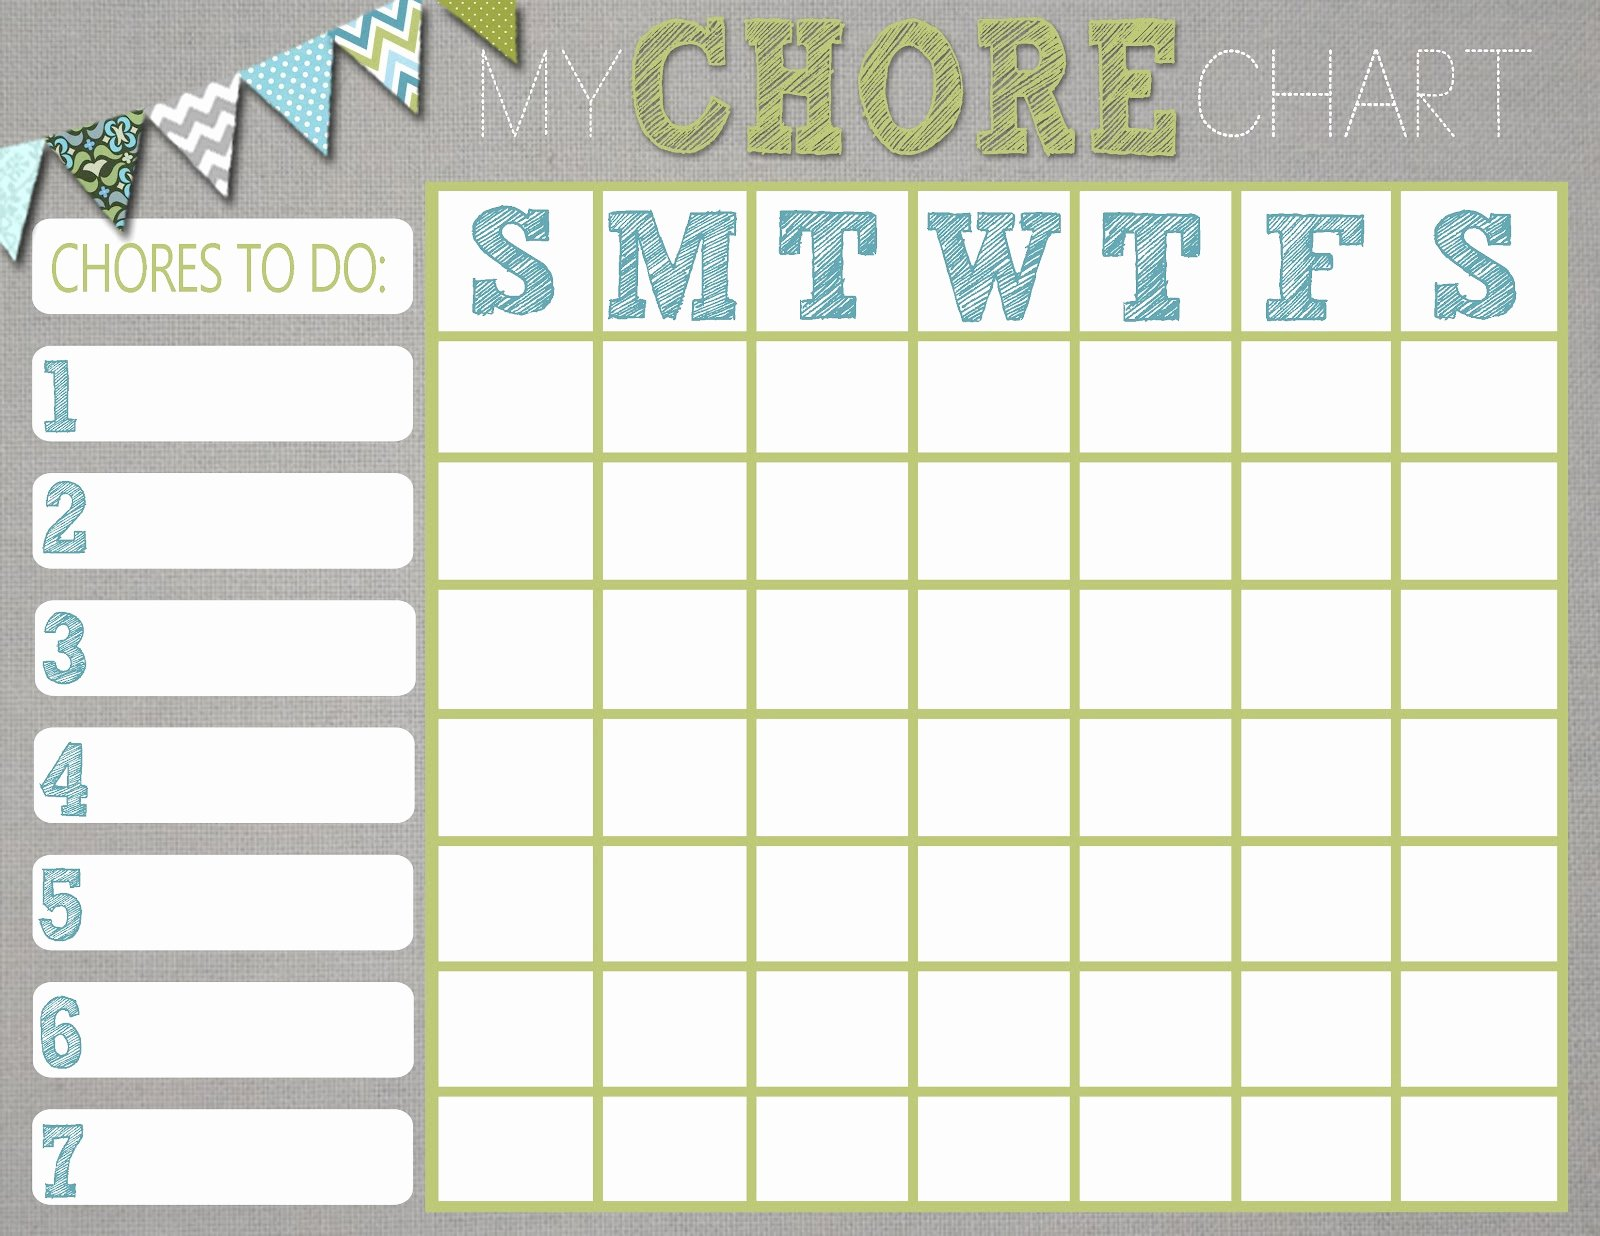 Free Chore Chart Template Unique Chore Charts